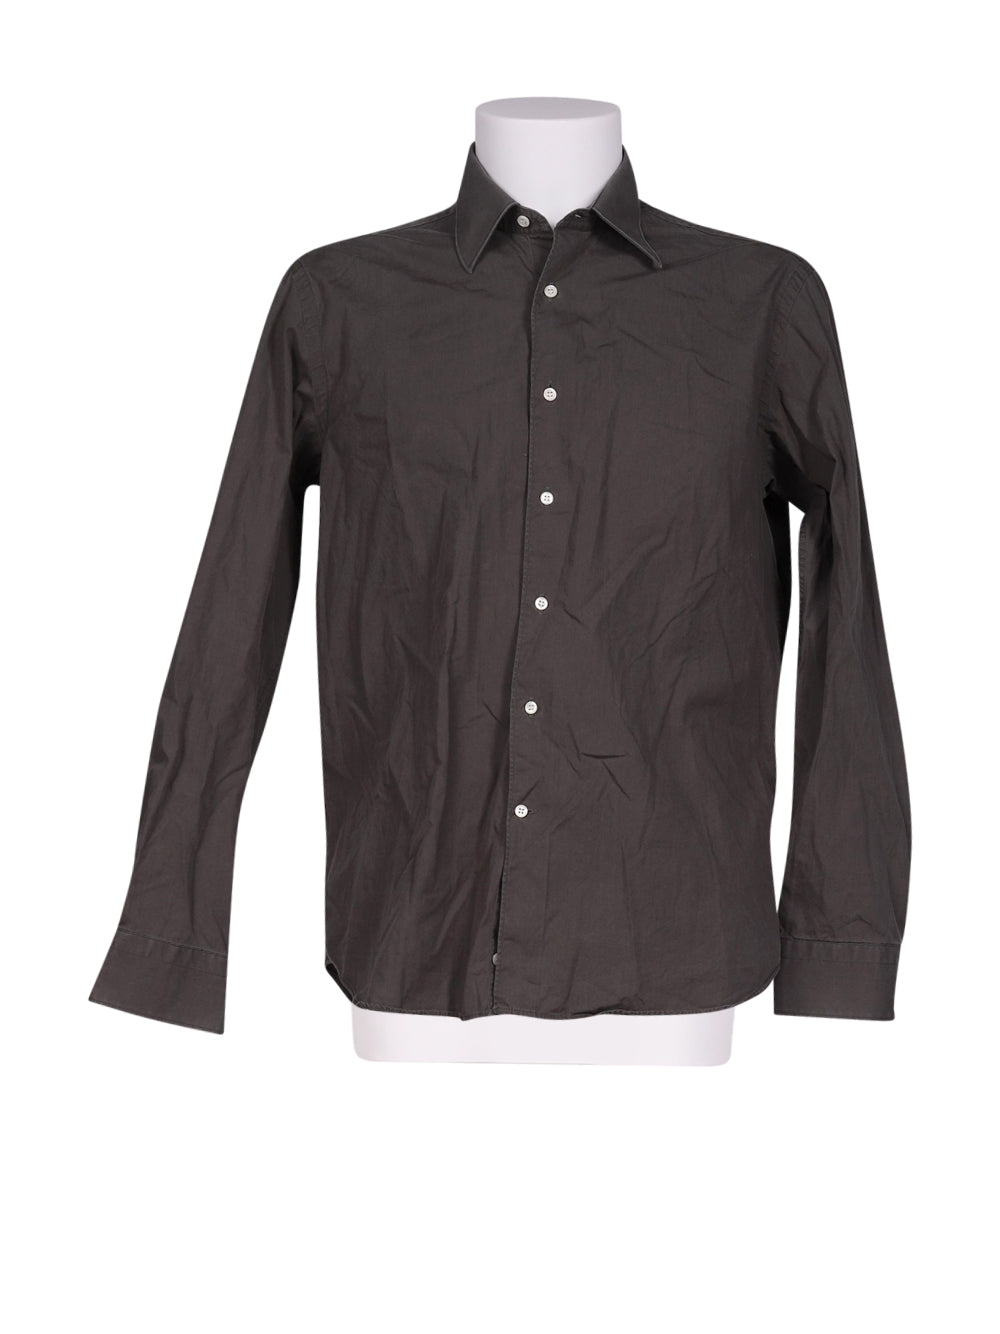 Front photo of Preloved giovanni taccaliti Grey Man's shirt - size 34/XS